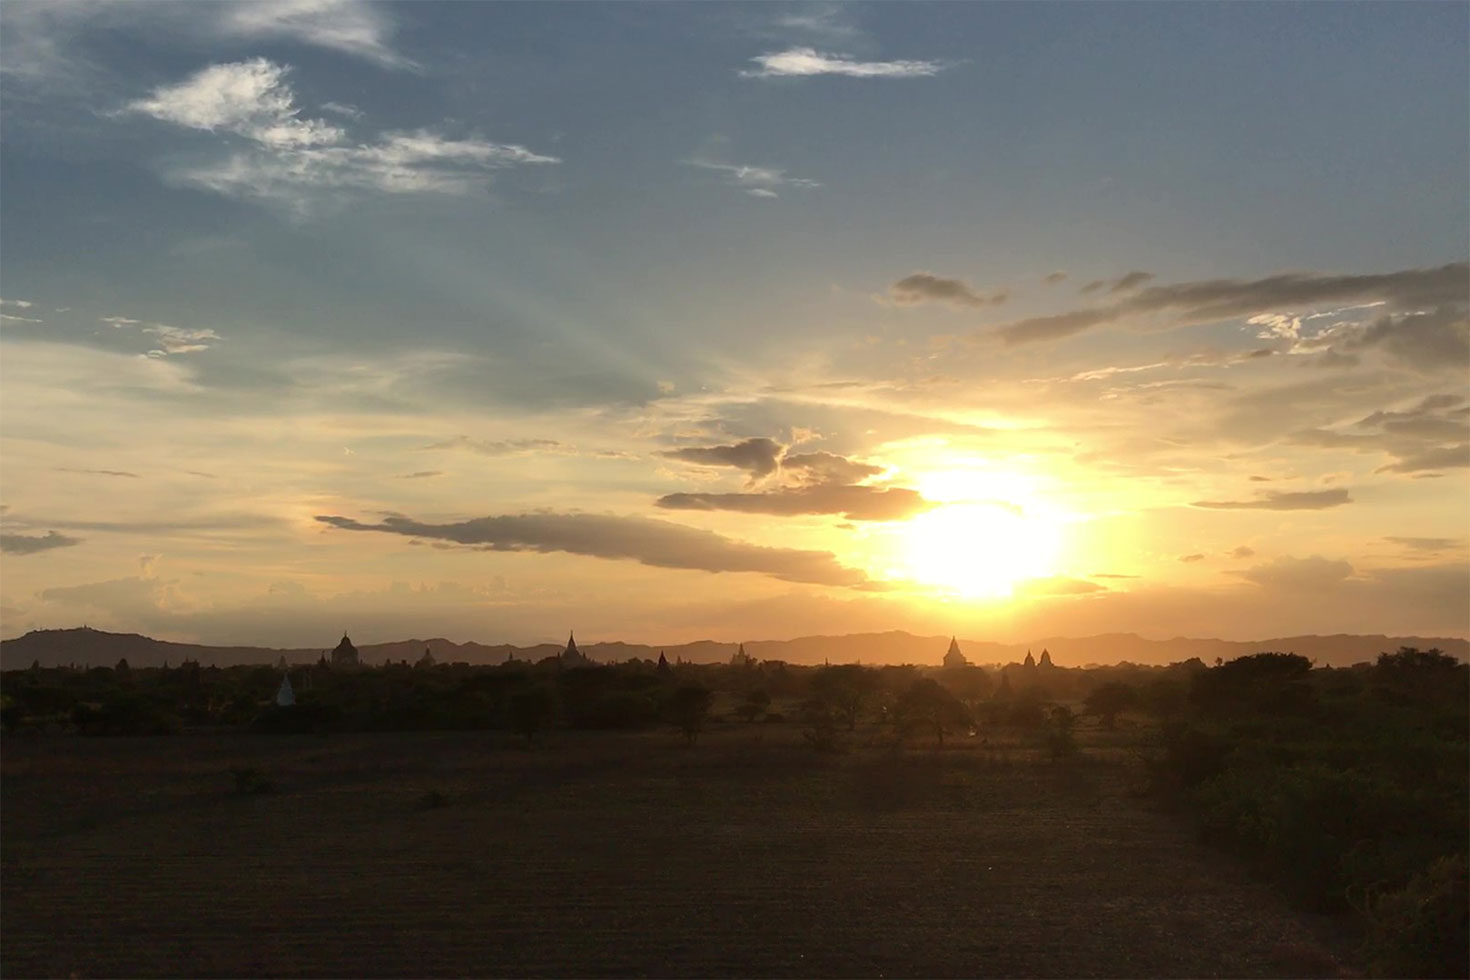 On the man-made viewing mound you can see sunset and I could see the sun and an overview of Bagan for free.